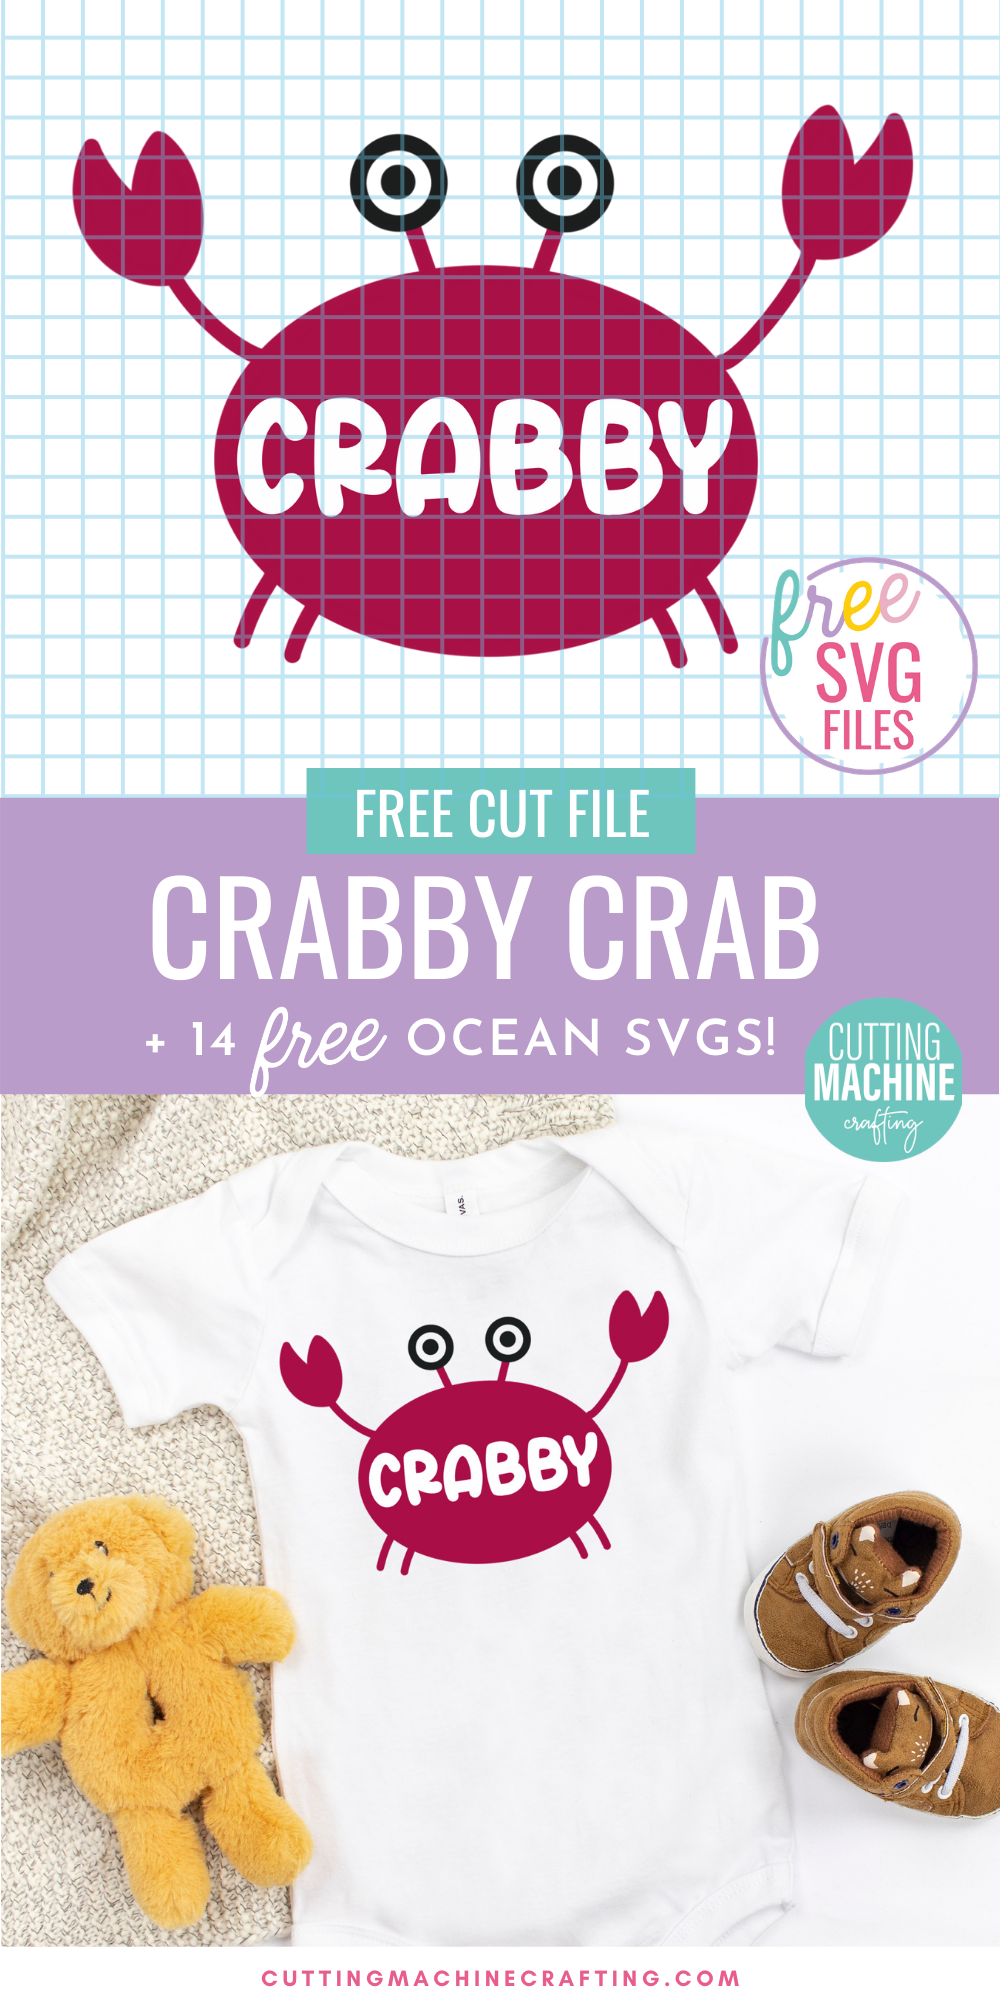 Get in the summer spirit with 14 free ocean SVGs from some of your favorite craft bloggers! Make shirts, tank tops, onesies, beach bags and more using your Cricut Maker, Cricut Explore Air 2, Cricut Joy or other electronic cutting machine. Includes an adorable Crabby Crab Cut File that looks so cute on DIY baby clothing!